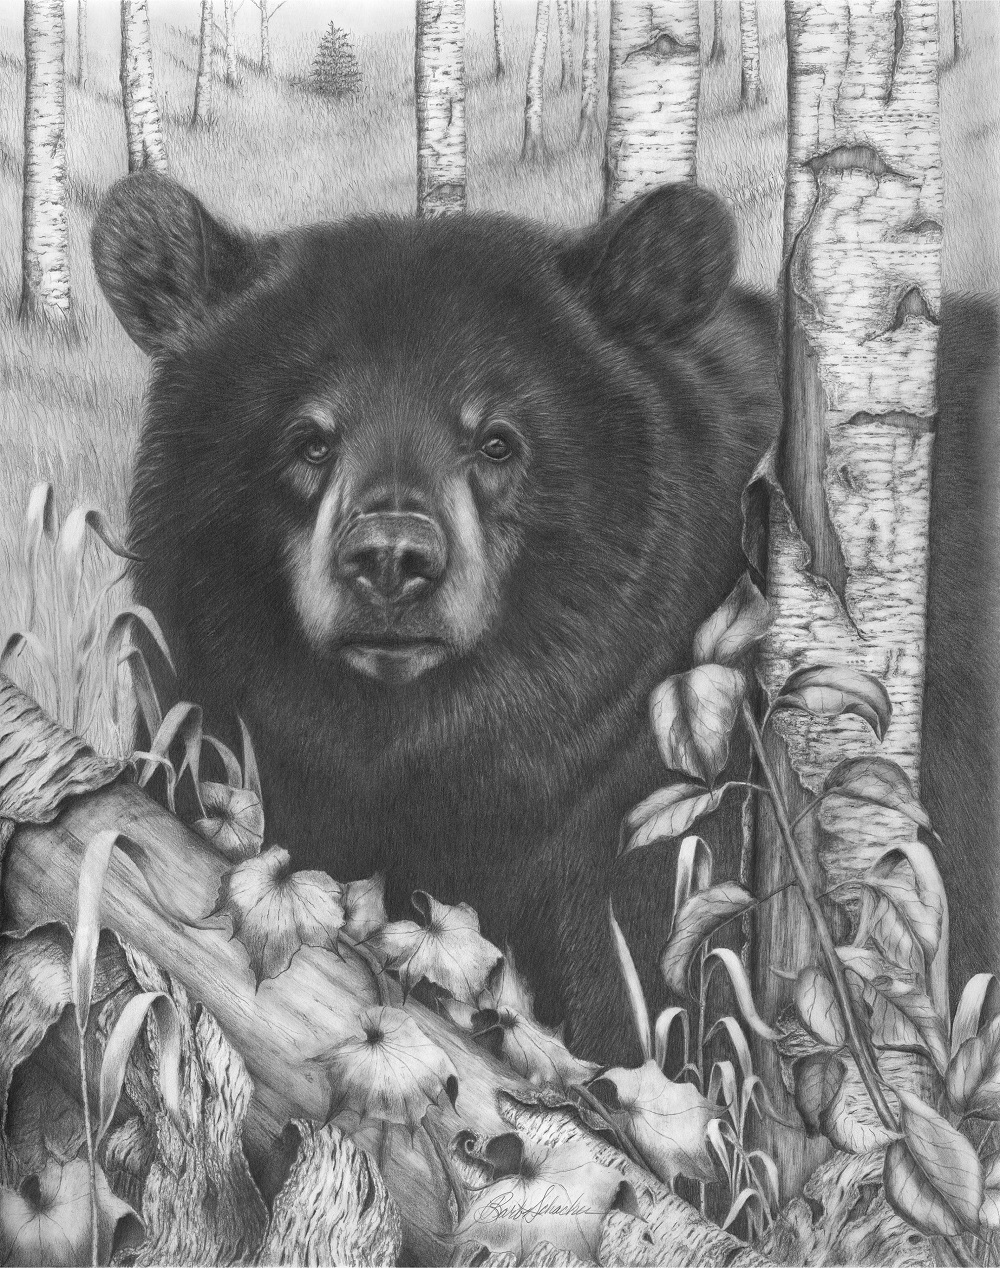 bear face drawing bear tattoo design Татуировки медведя Изображения bear face drawing